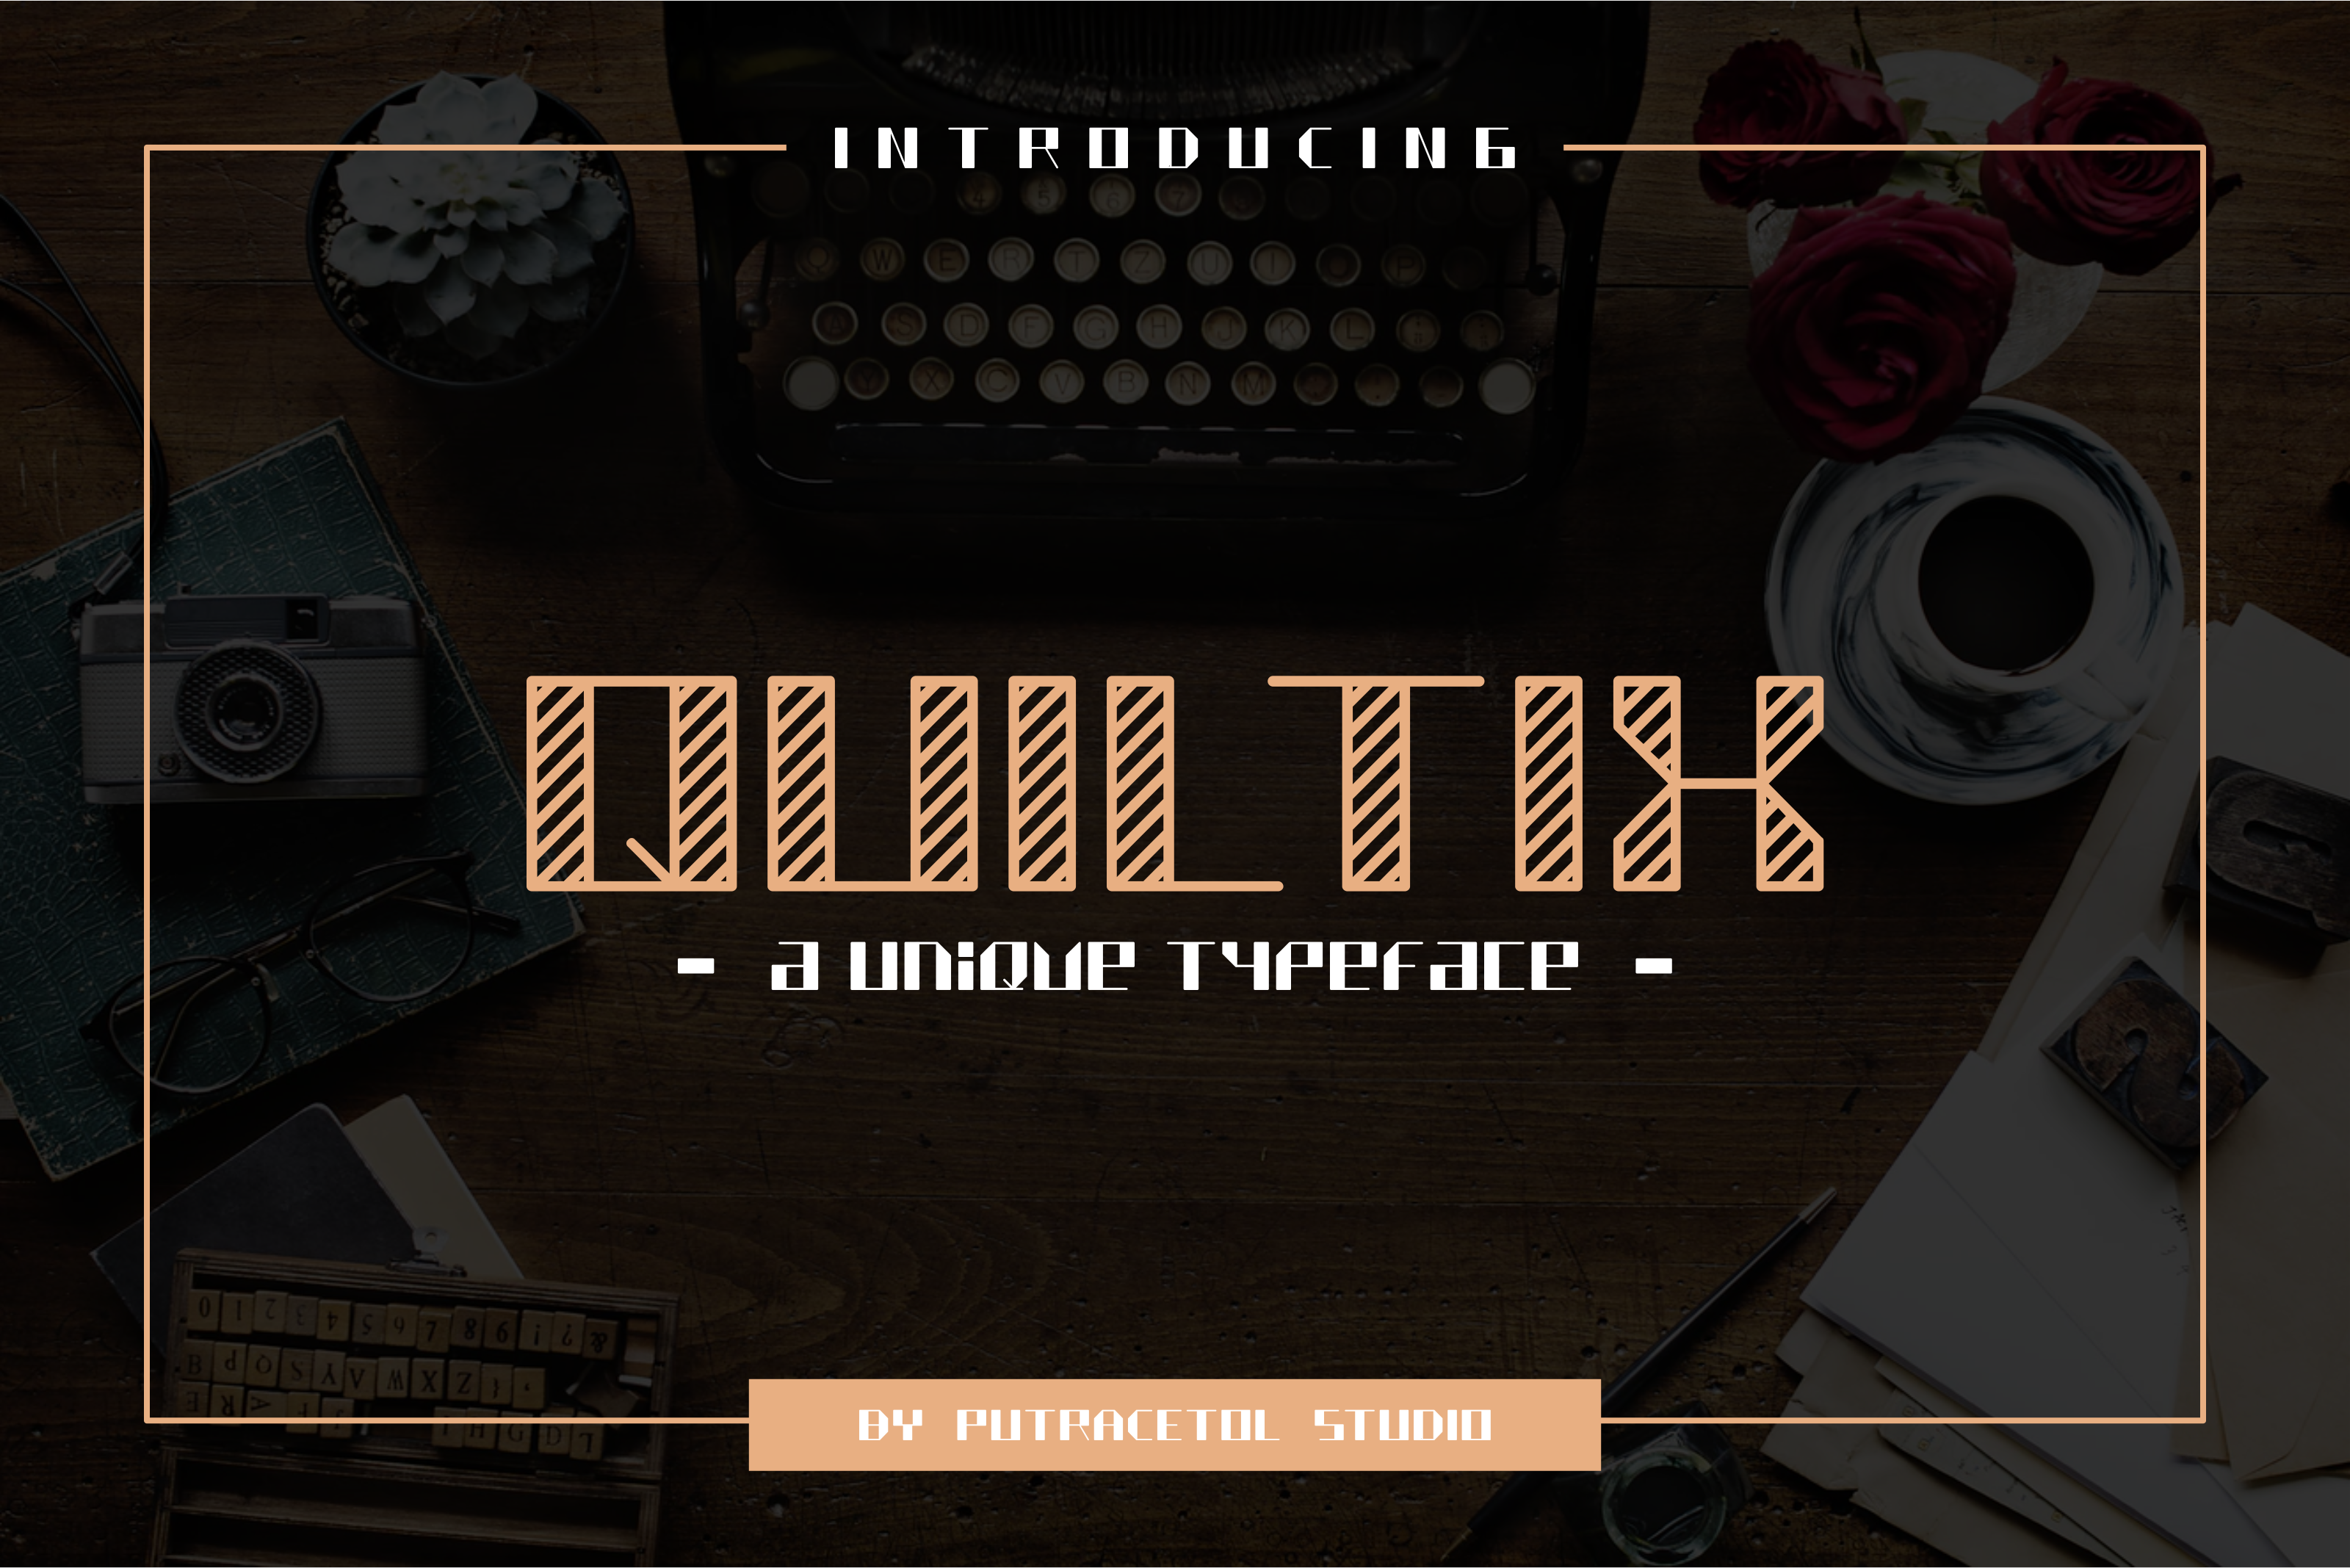 Quiltix (Font) by putracetol